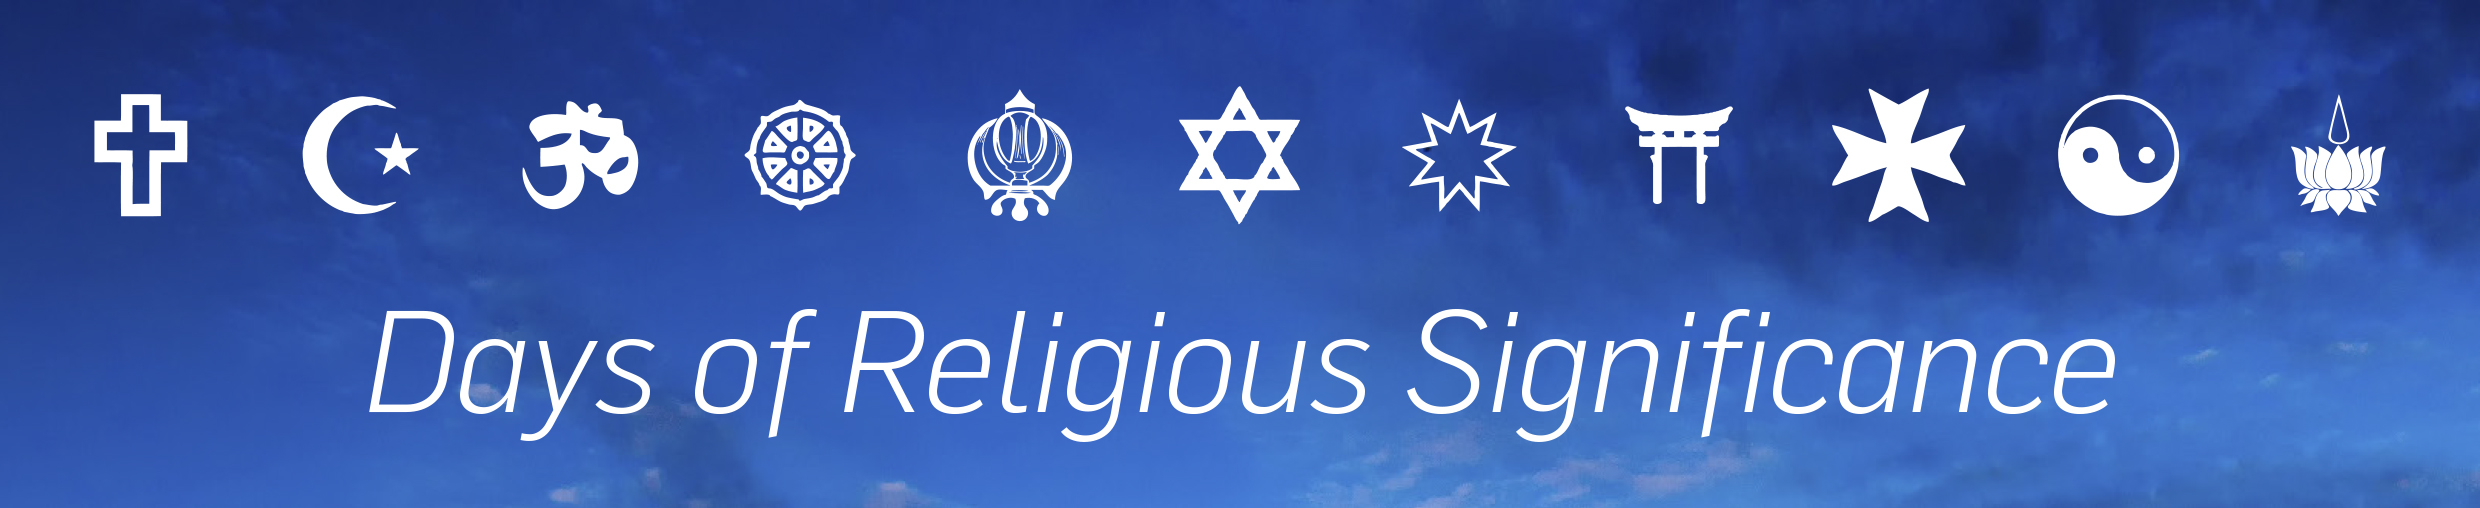 Guides to some of the Days of Religious Significance